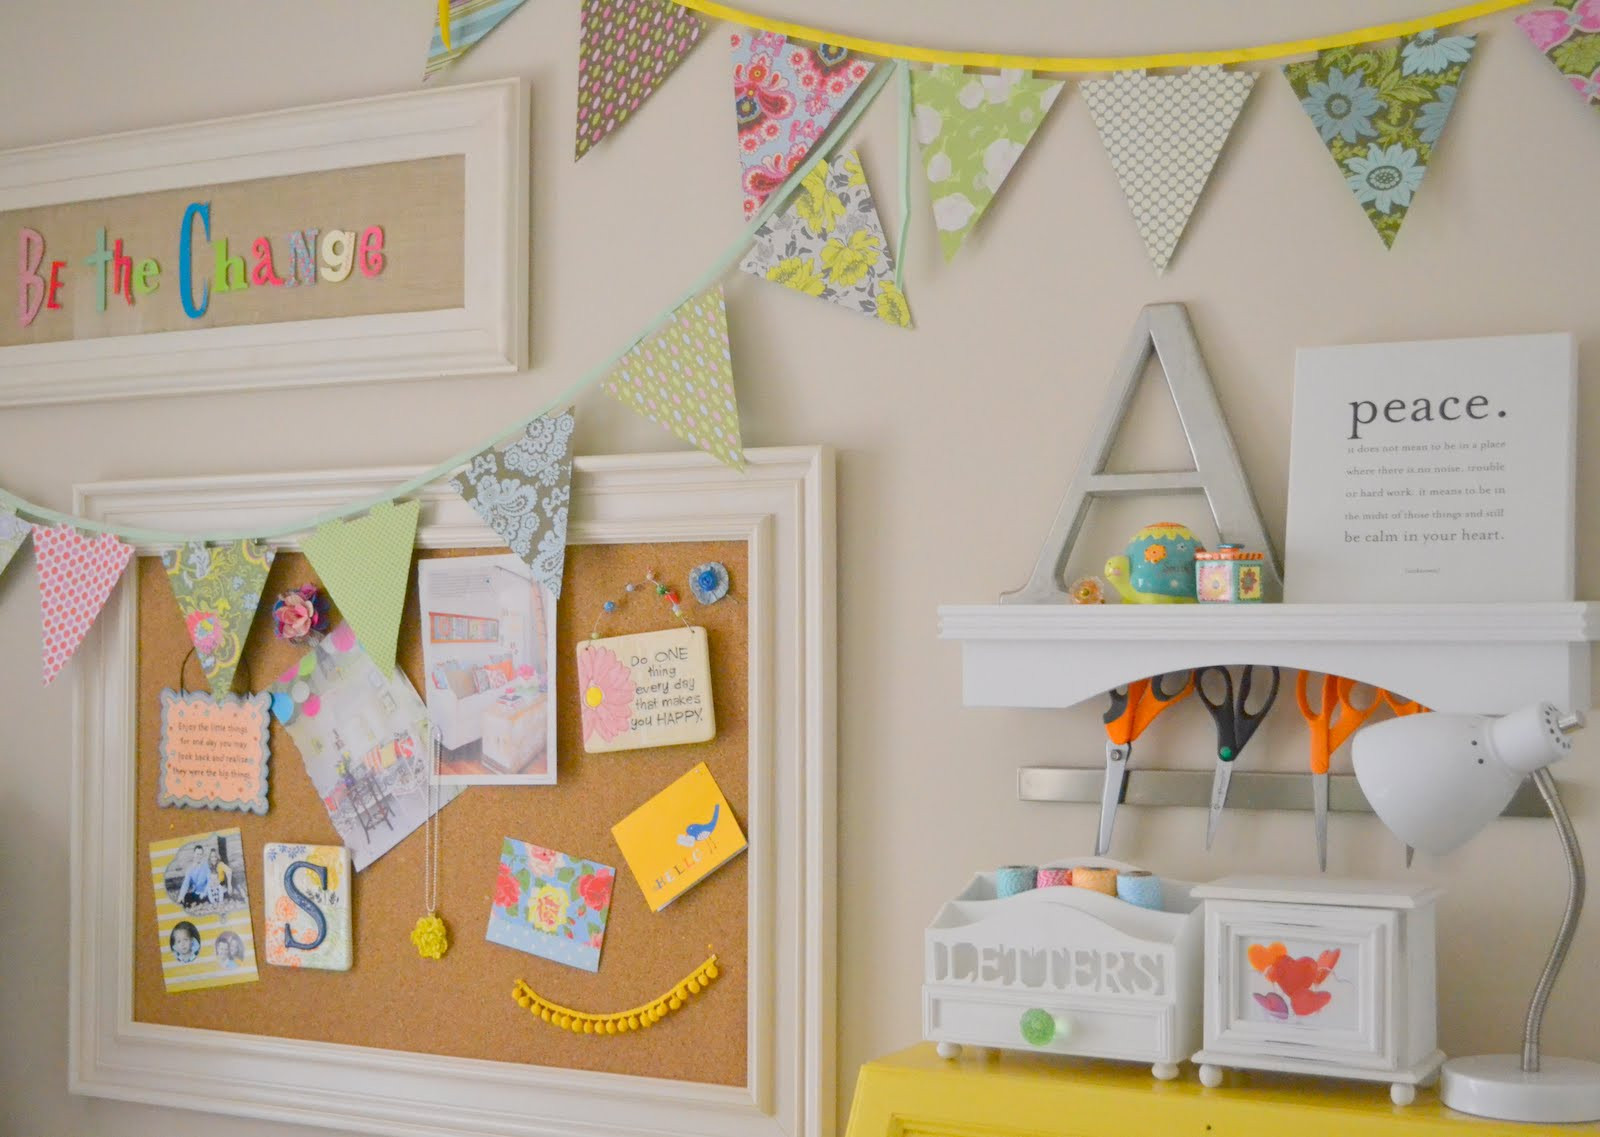 Best ideas about Craft Room Decor . Save or Pin Whimsical Craft Room Decor Best nest Little Miss Momma Now.